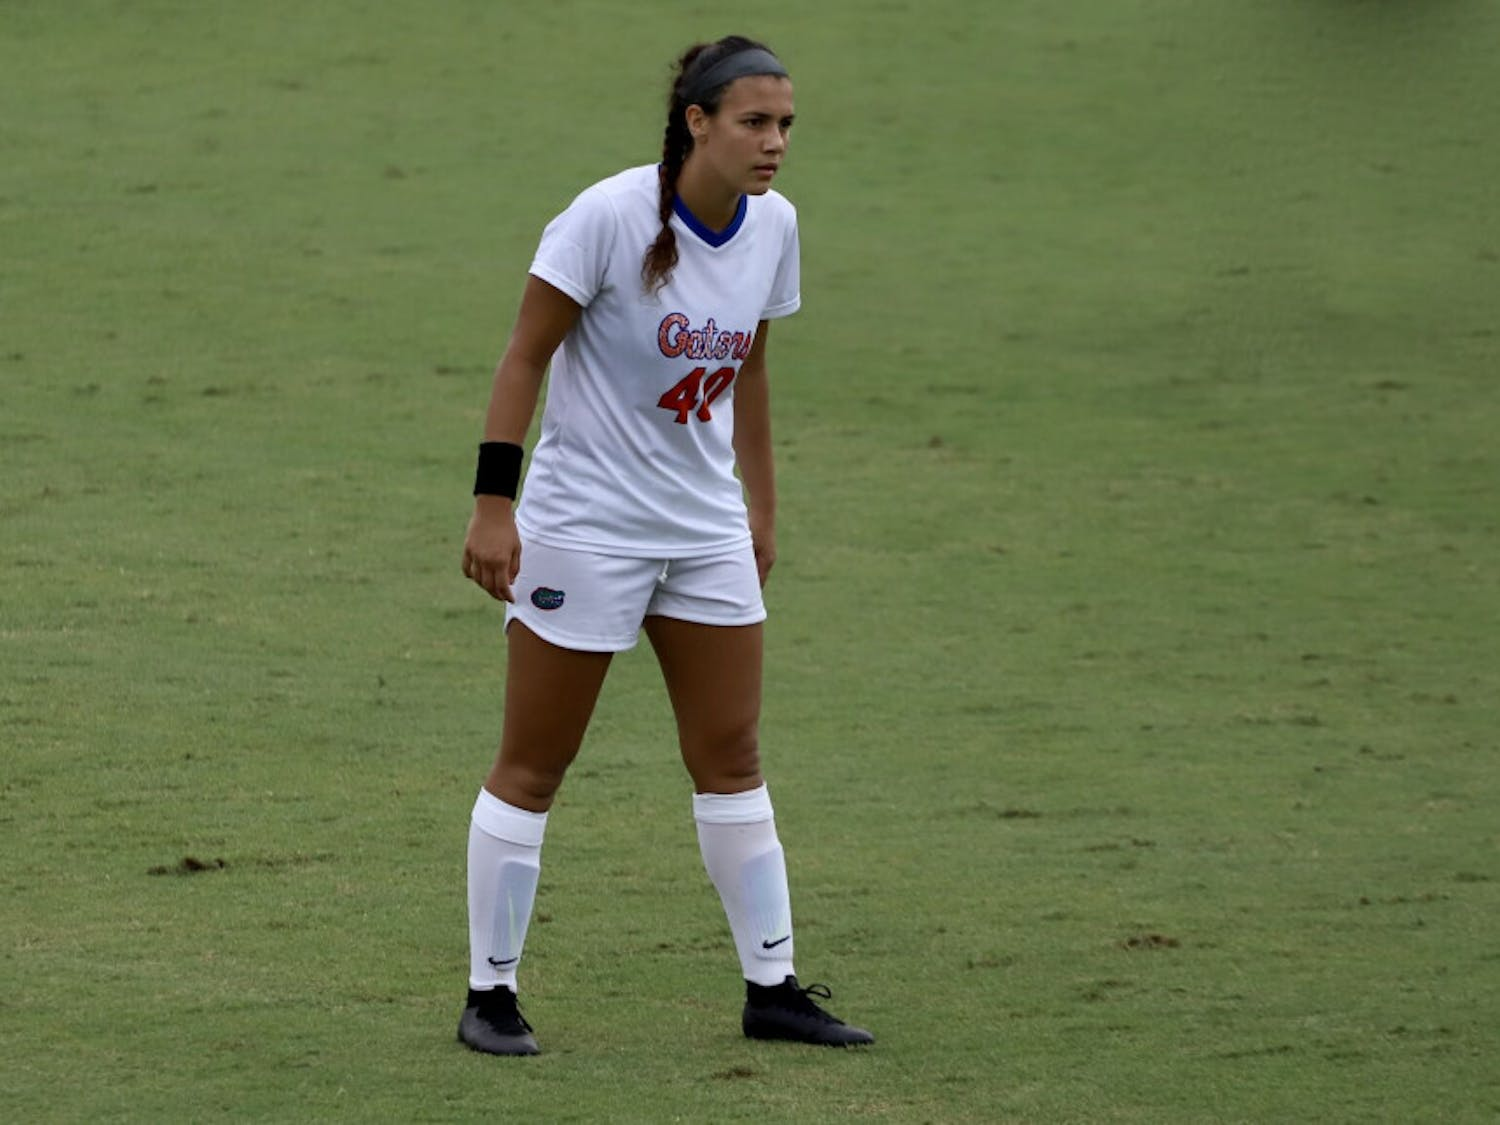 Sophomore forward Alivia Gonzalez nailed a game-winning shot in Alabama's goal to protect Florida's unbeaten record.